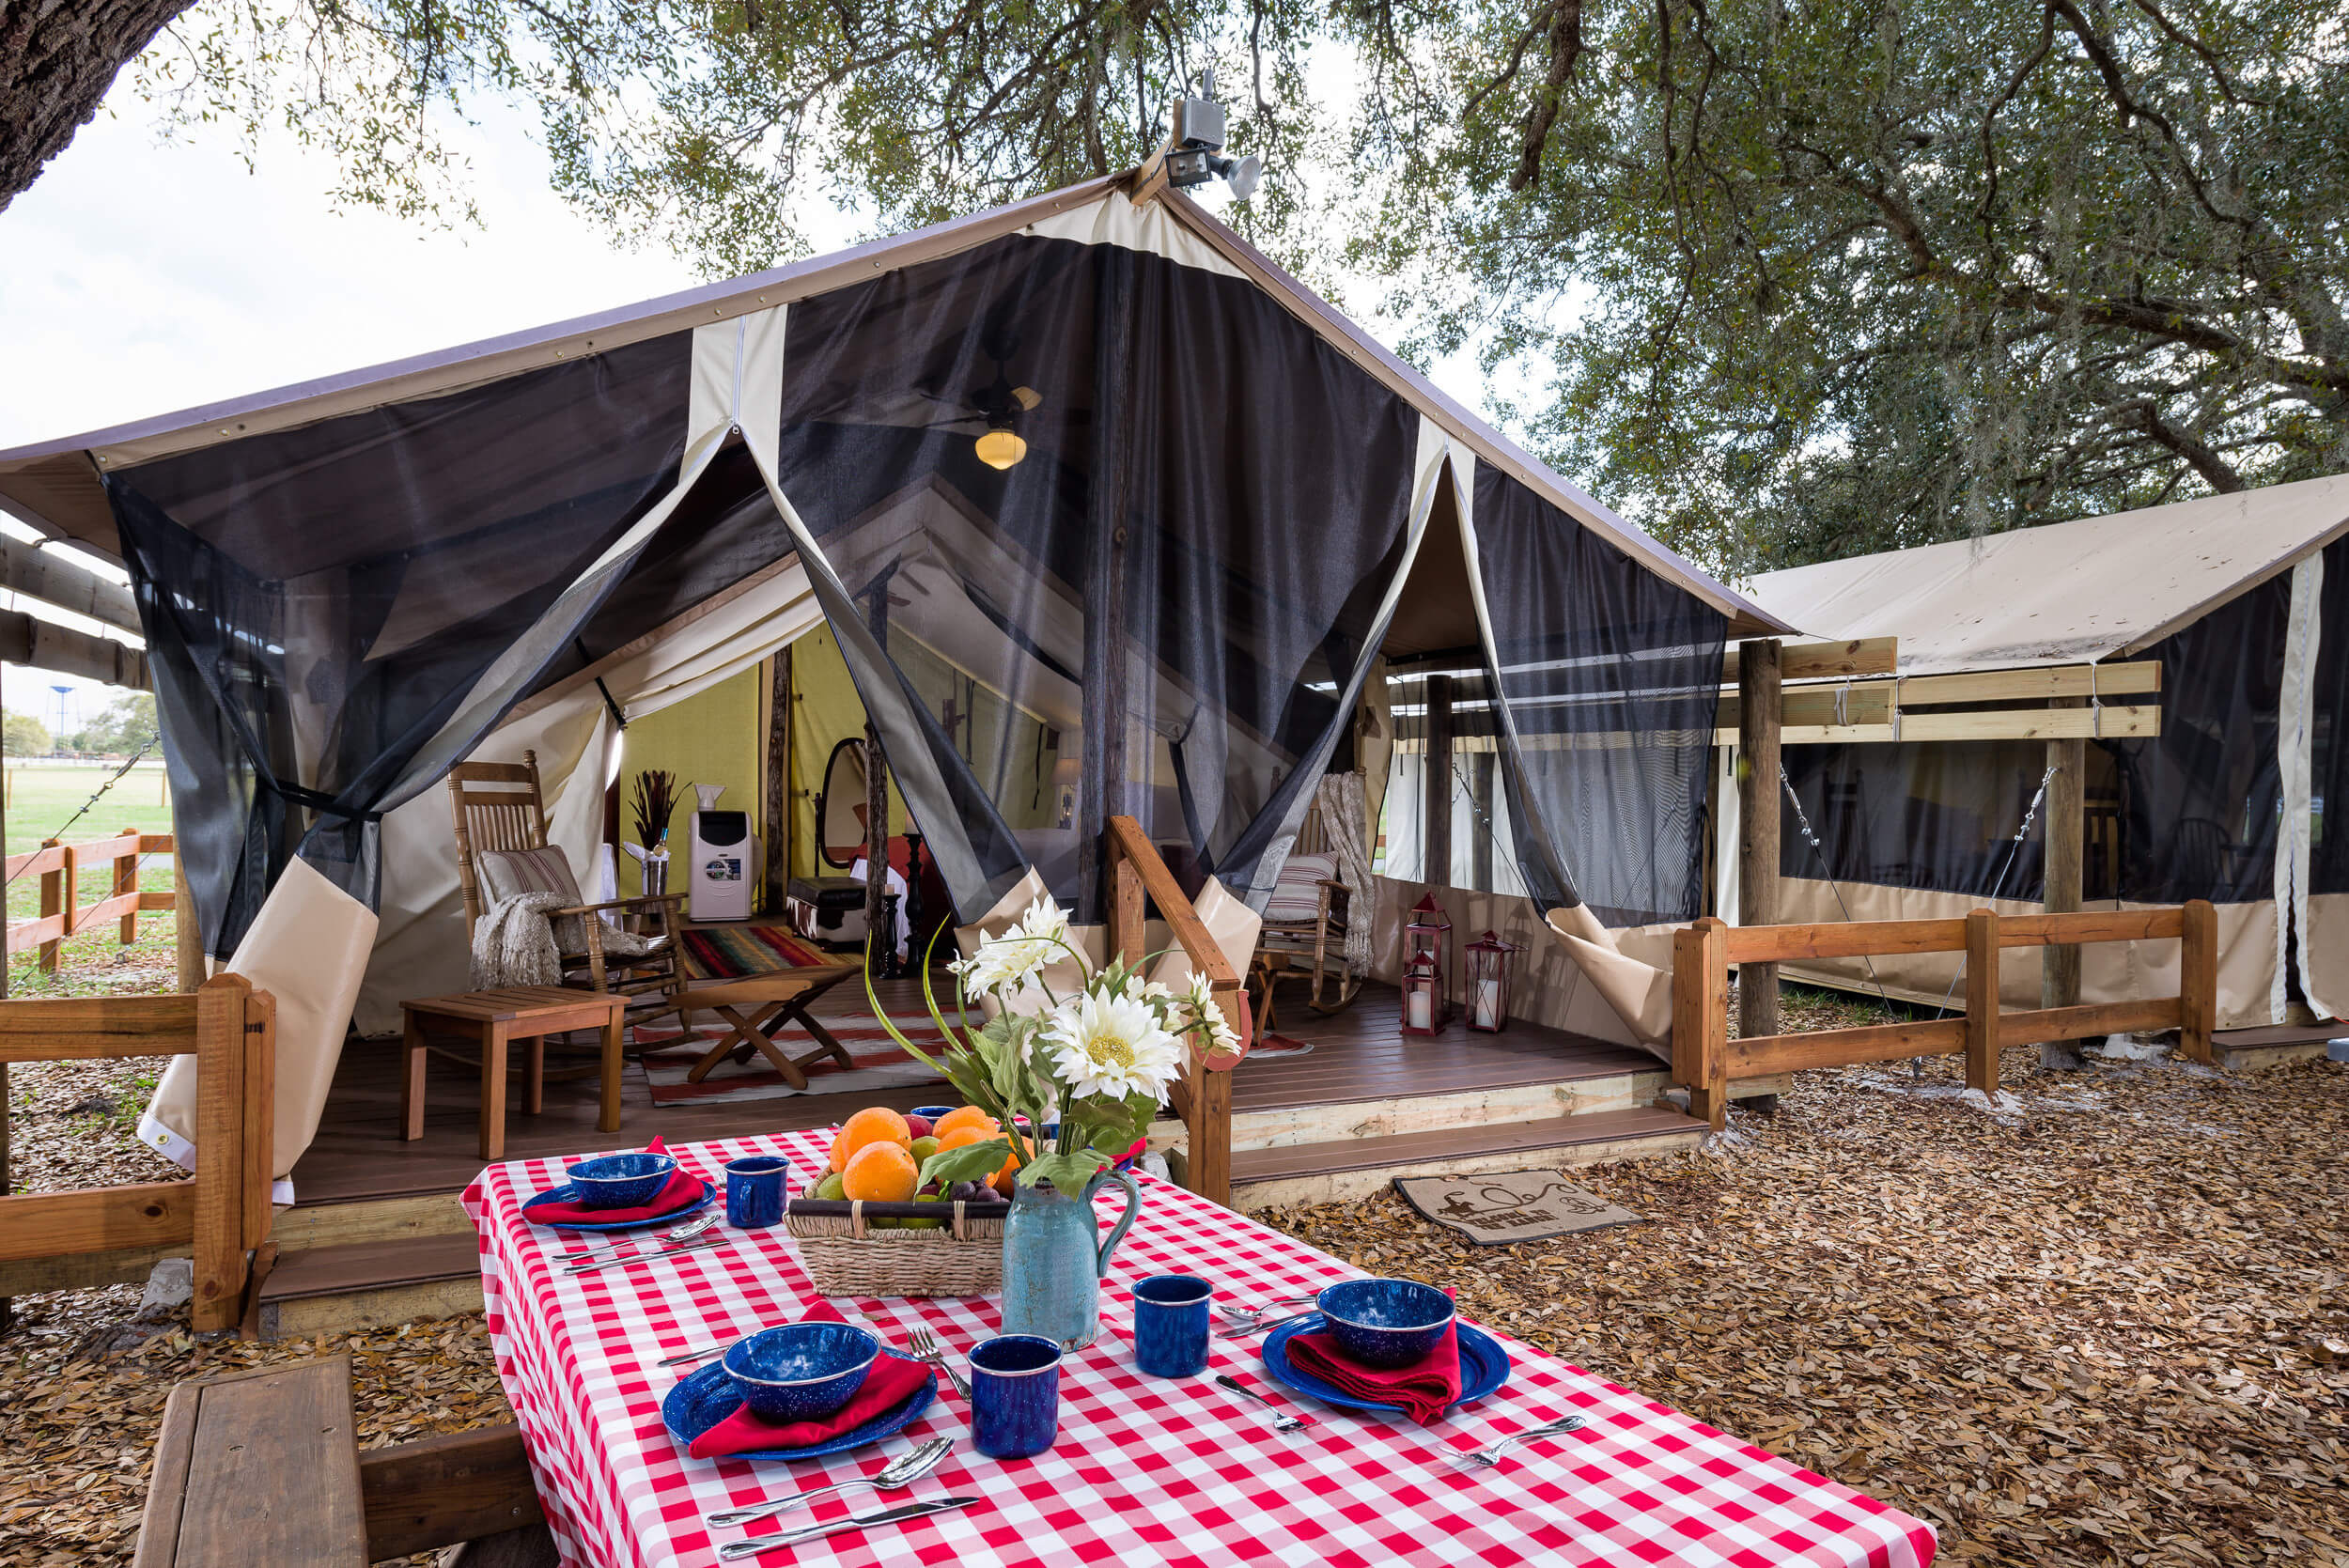 A Glamping birthday party setup at Westgate River Ranch Resort & Rodeo